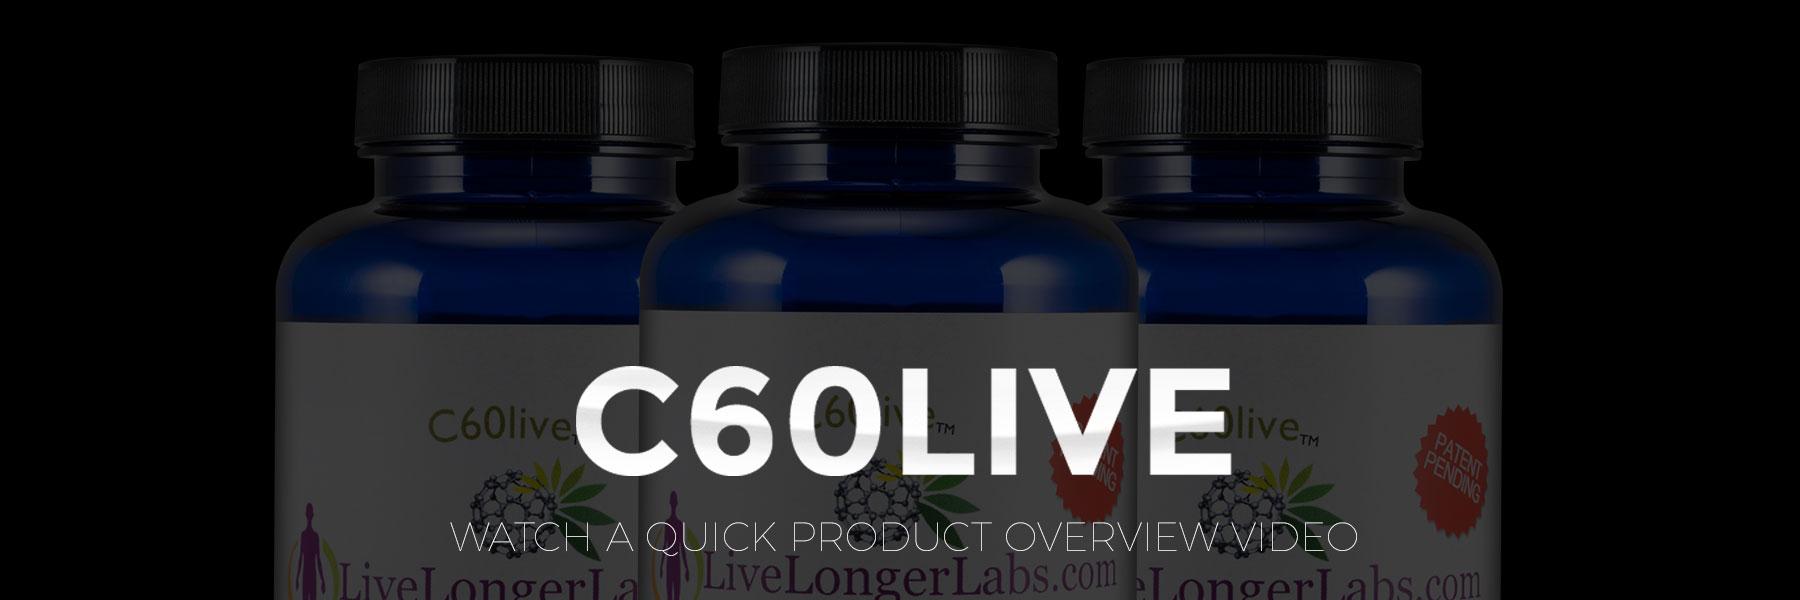 C60Live Watch a Quick Product Overview Video - C60Live Capsules